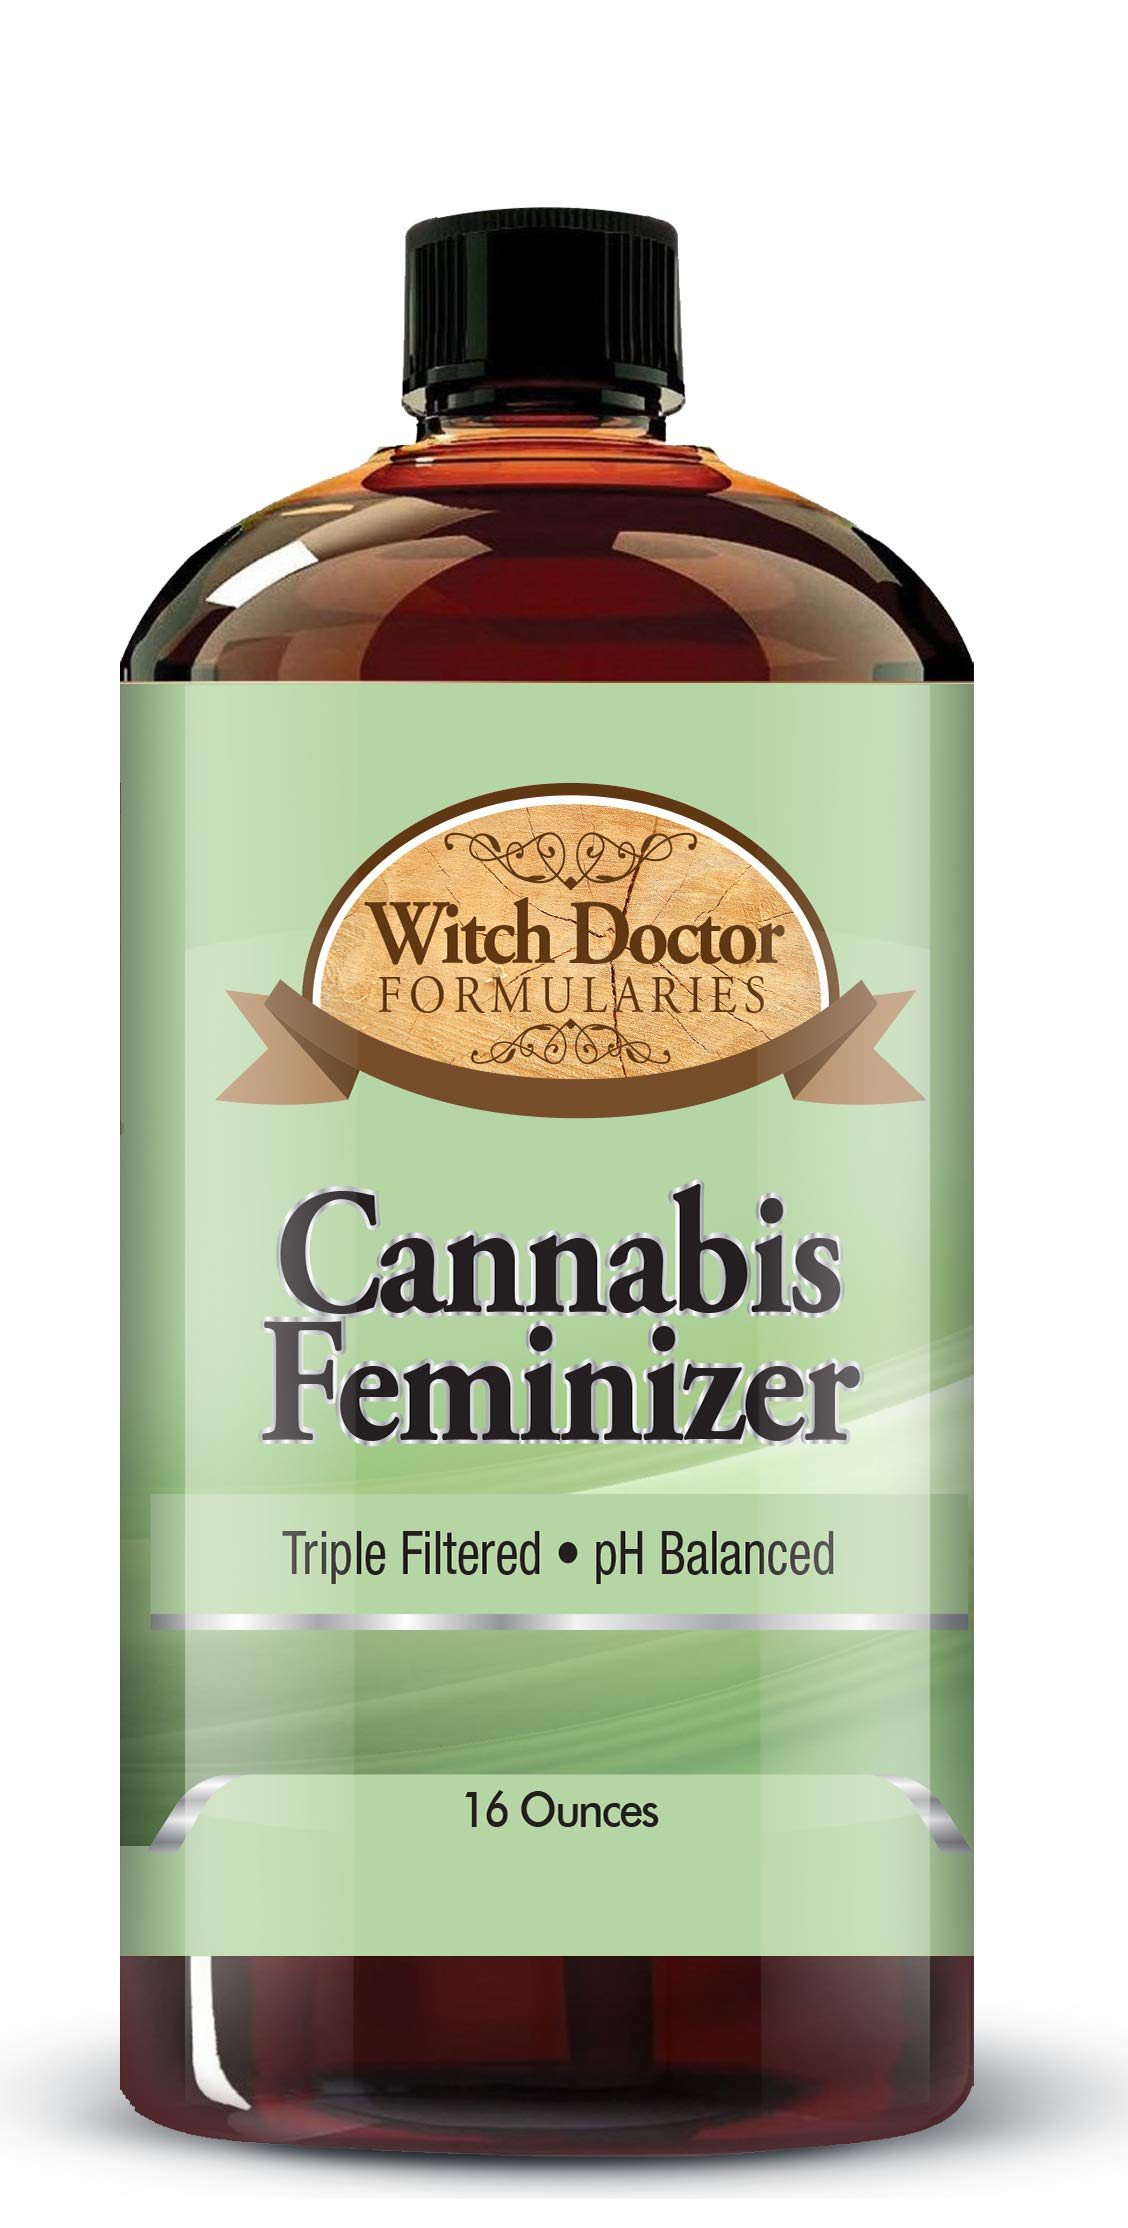 Plant Feminizing Seed Spray, Safe, Non-Toxic Colloidal Minerals, Safety Sealed 16 Ounce Bottle by Witch Doctor Formularies